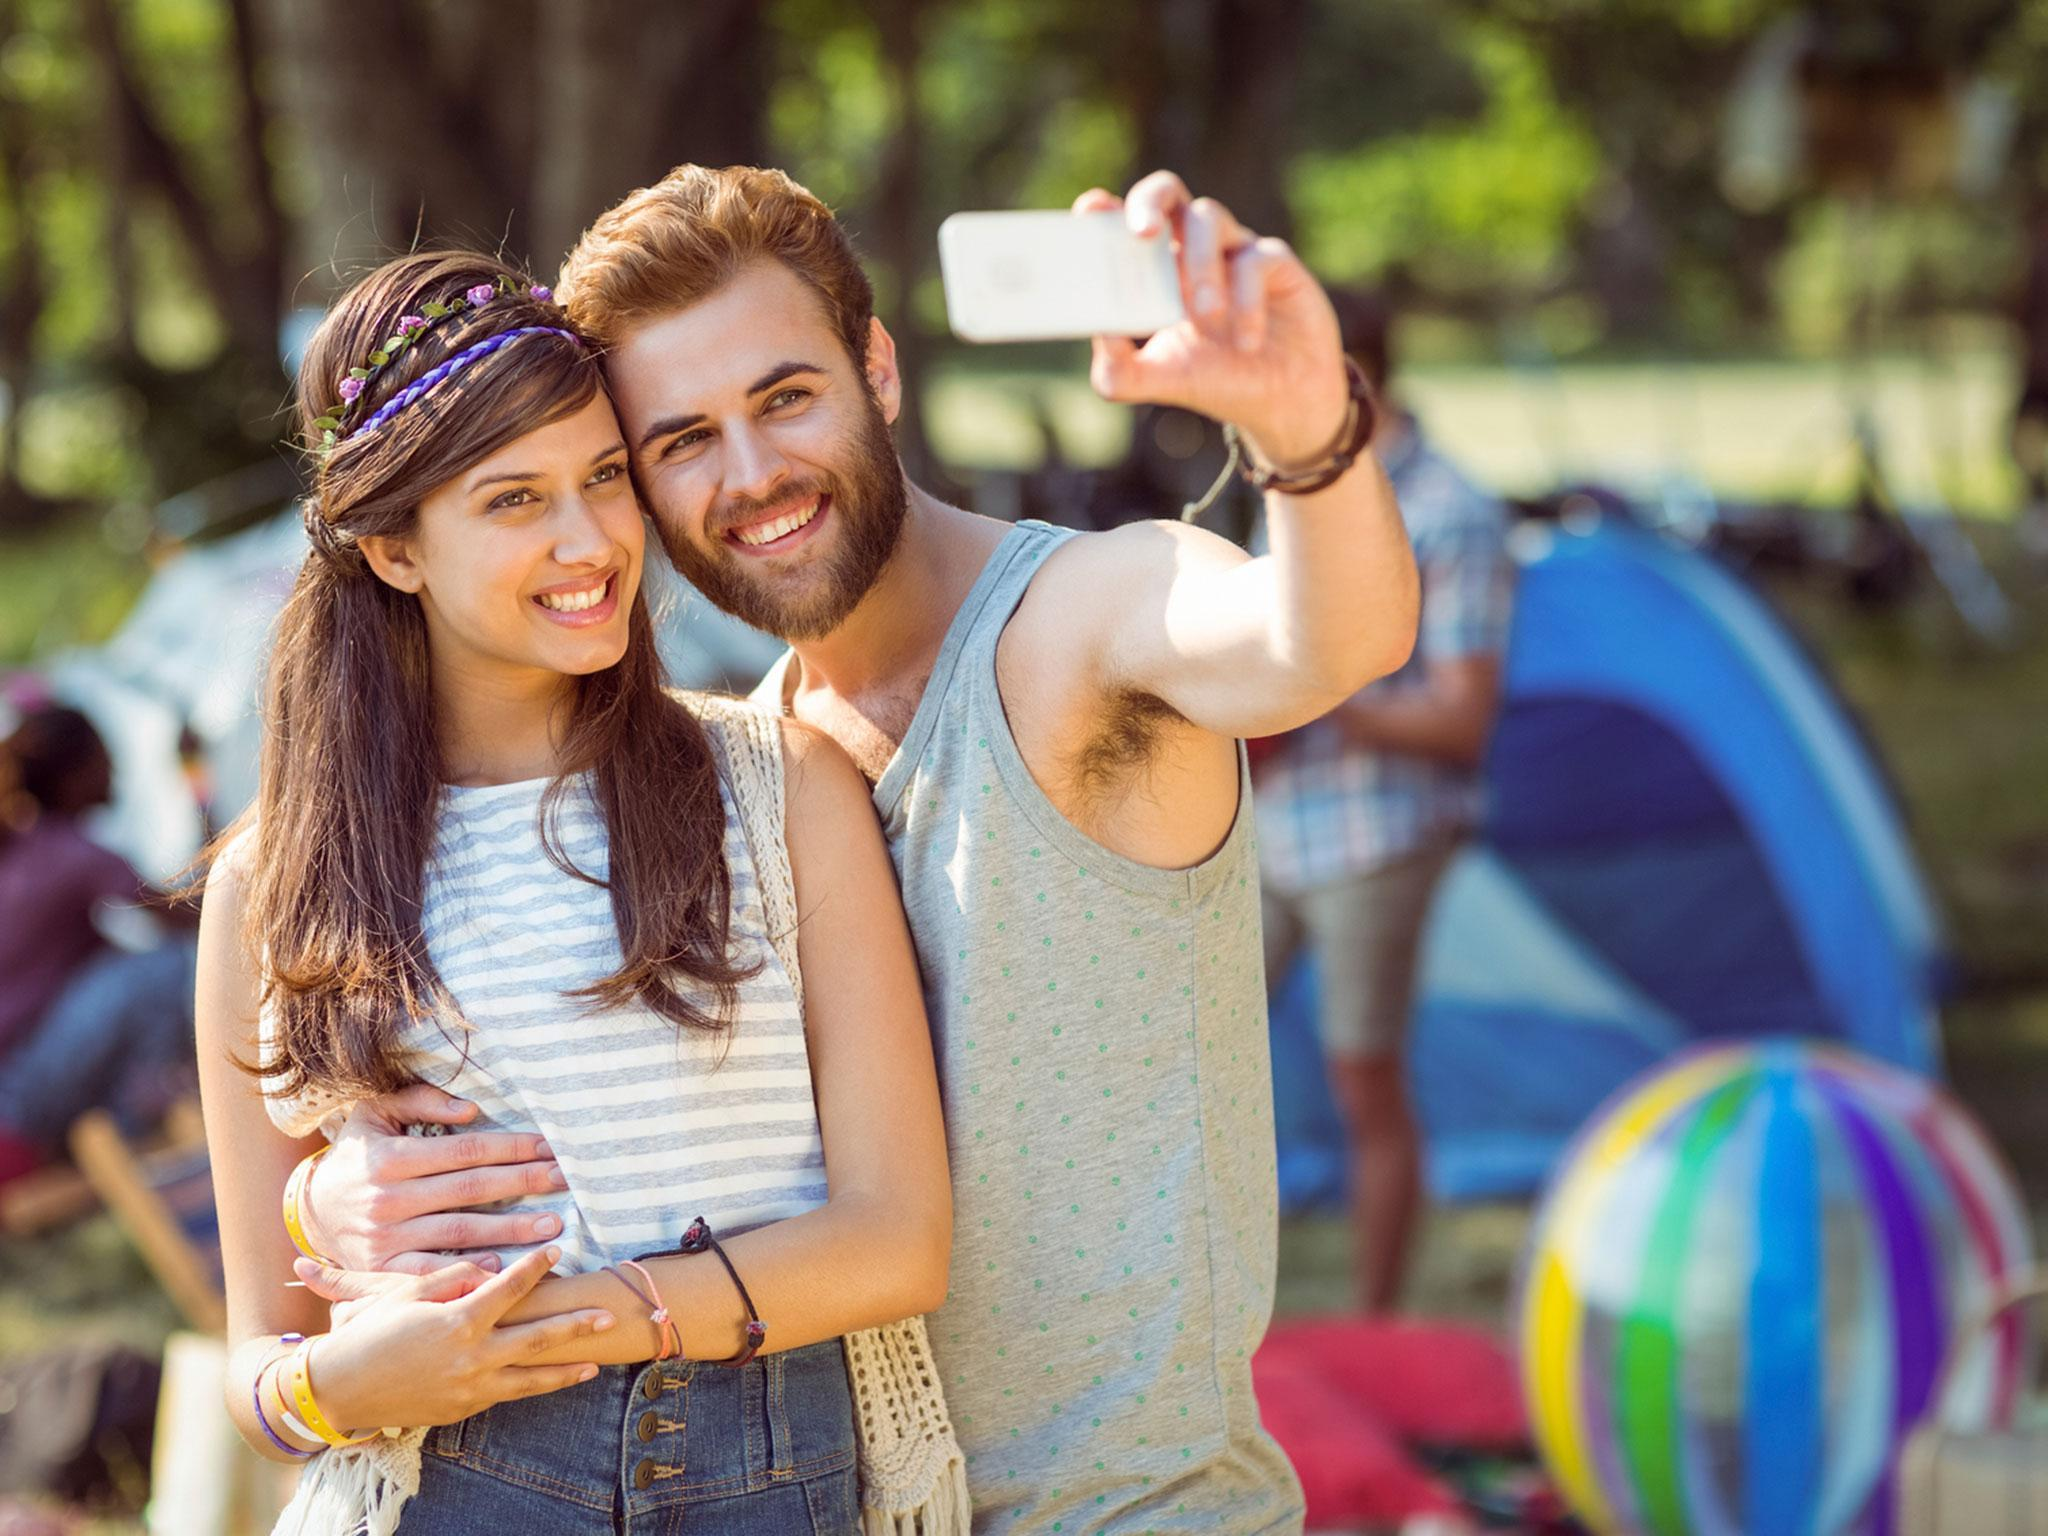 People keep dying taking selfies, this study reveals how